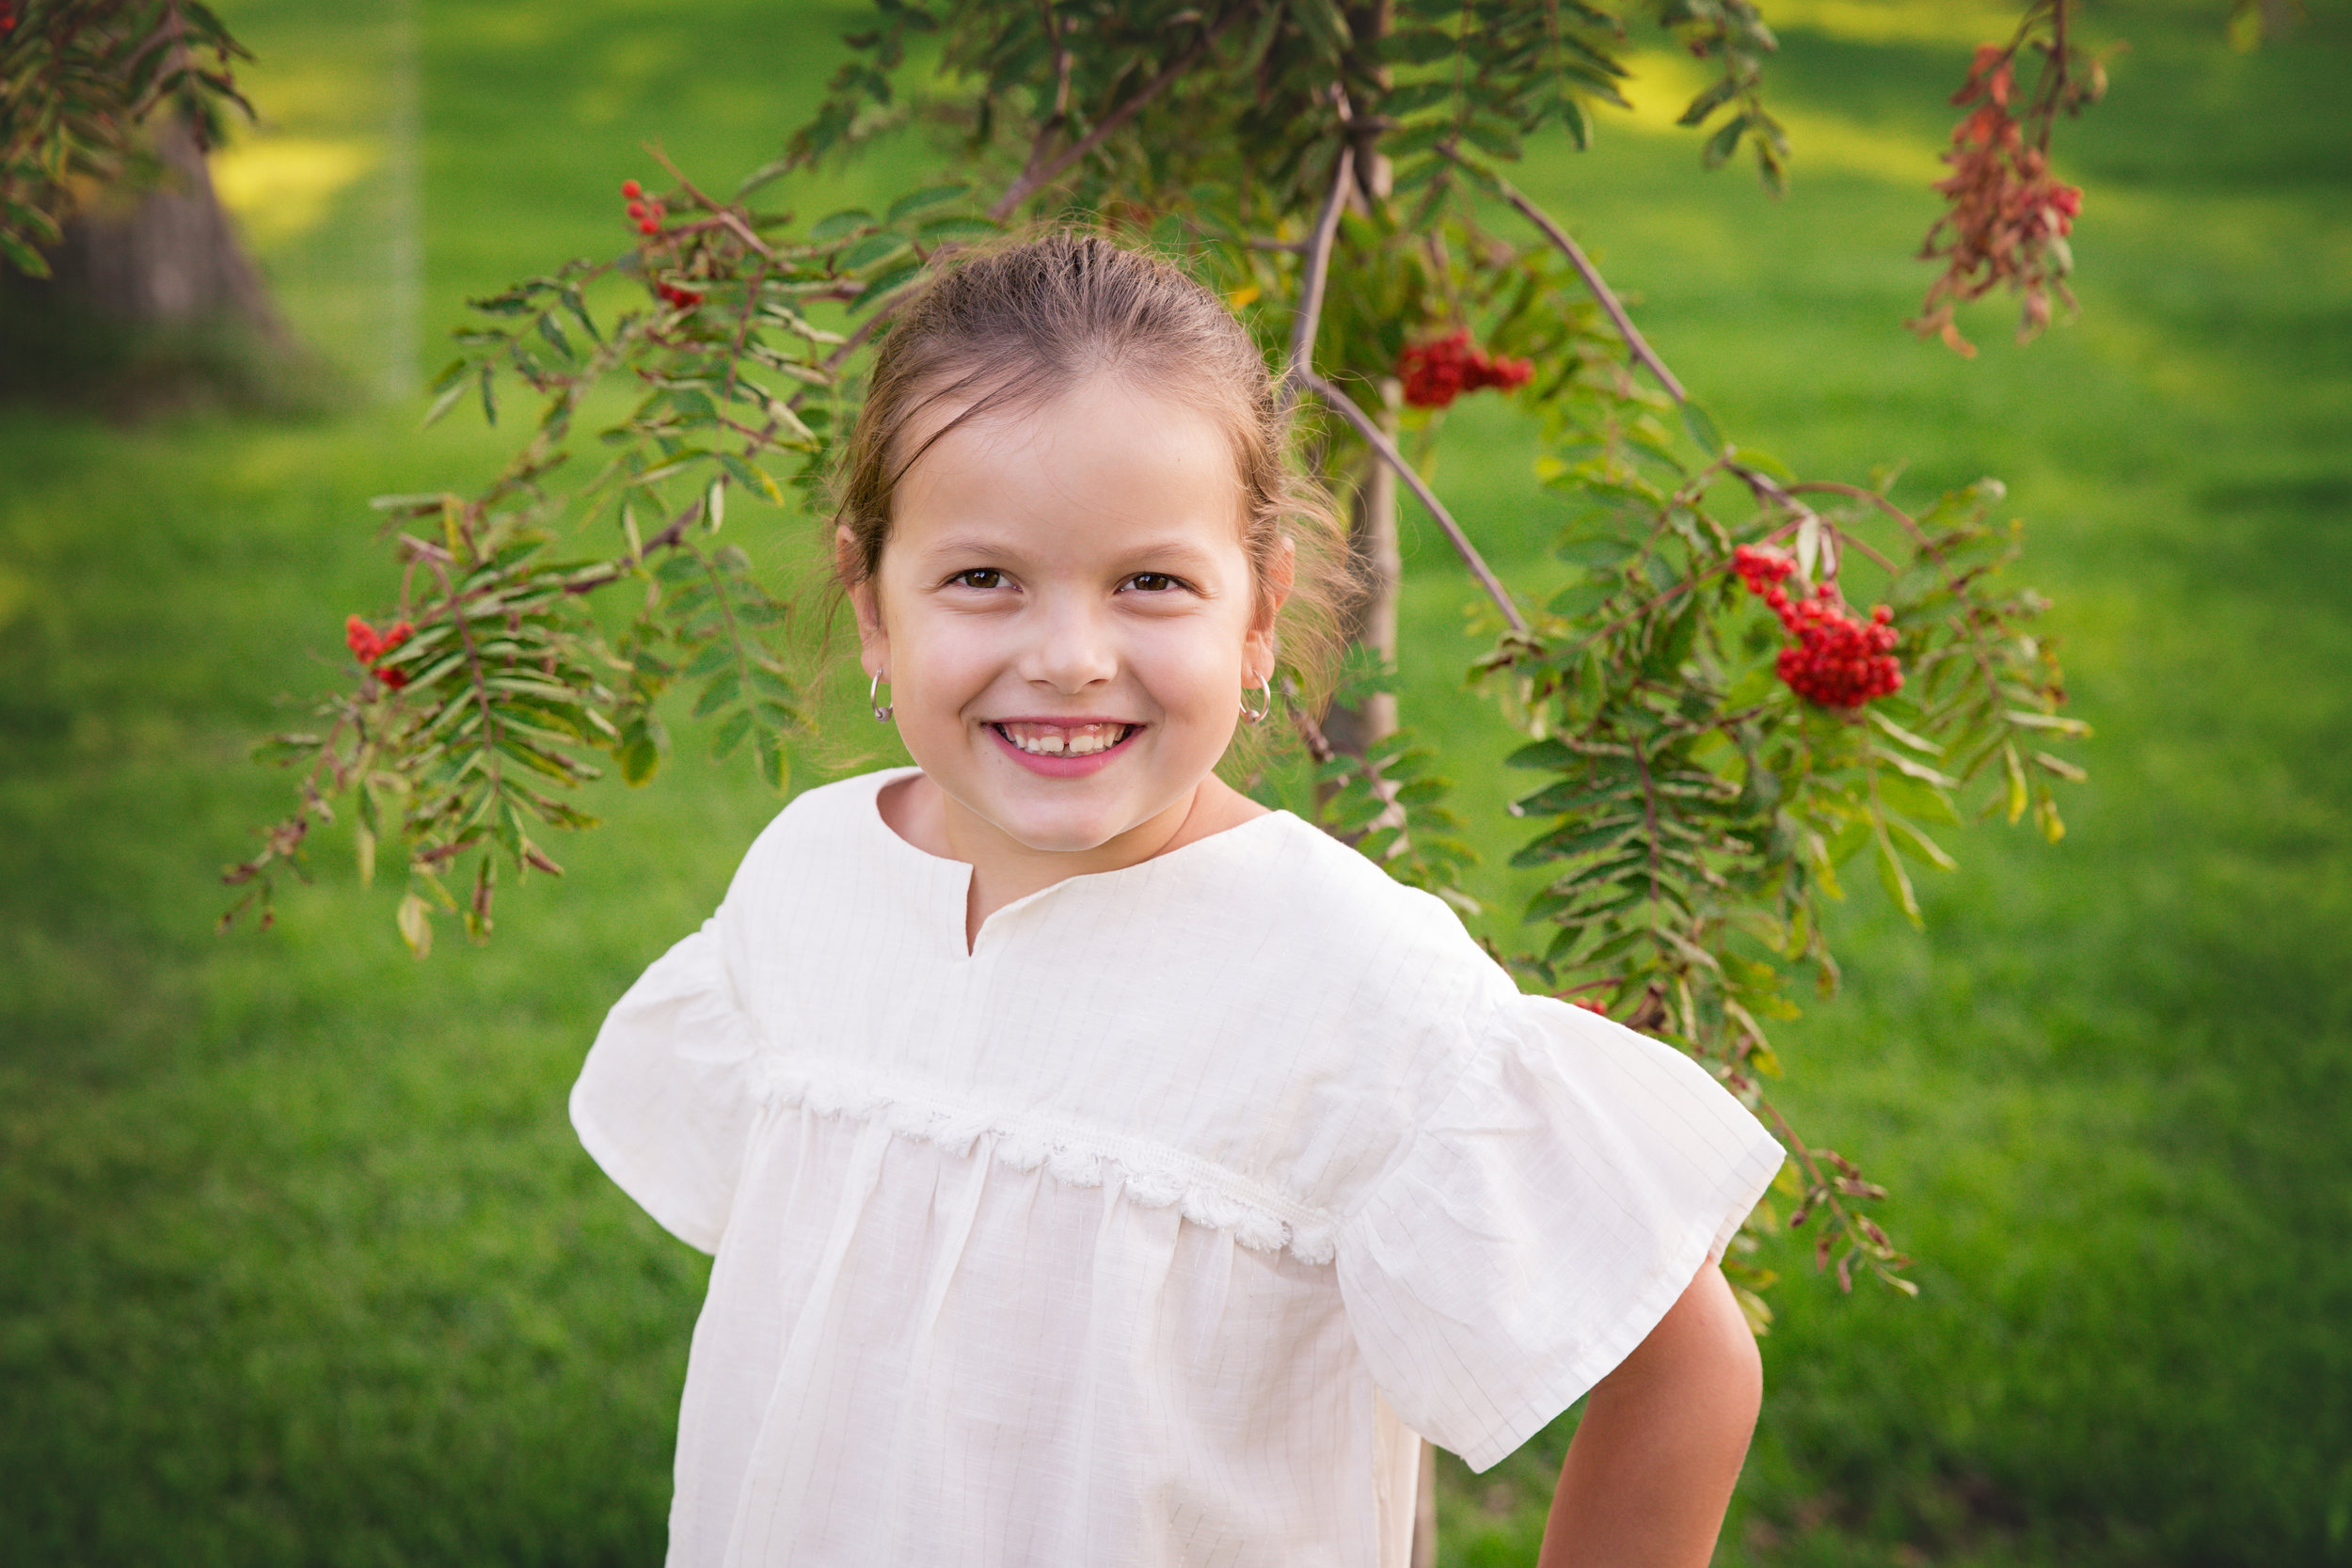 Girl is standing beside a tree with red berries. Airdrie family photographer. Milashka Photography